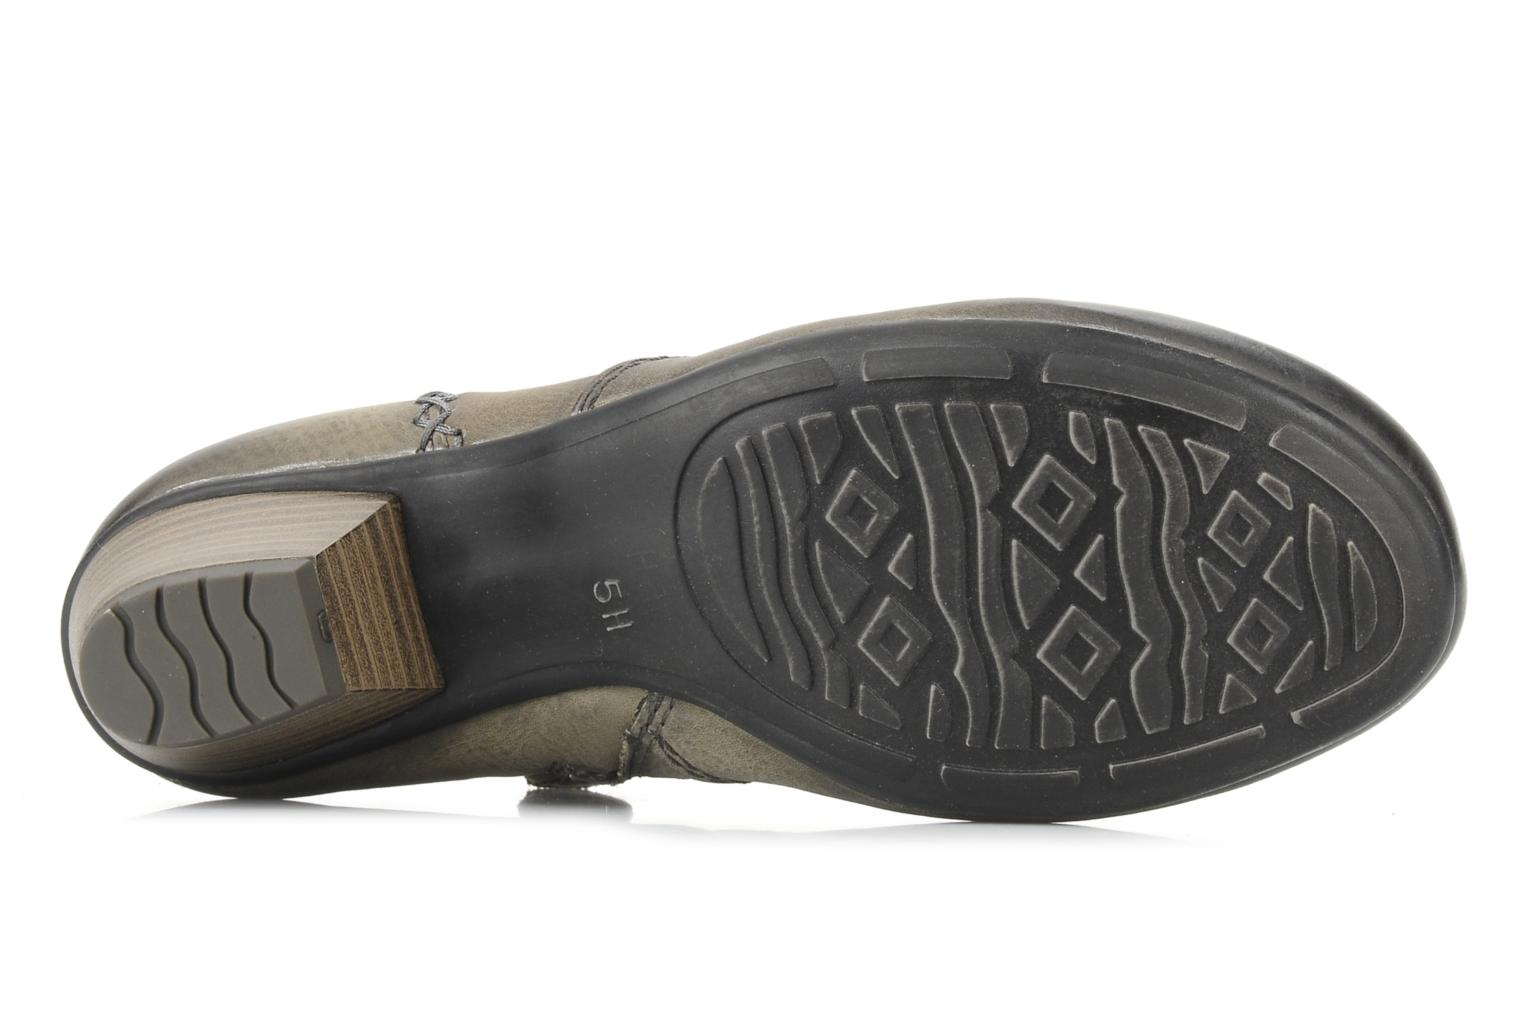 Miely Graphite leather